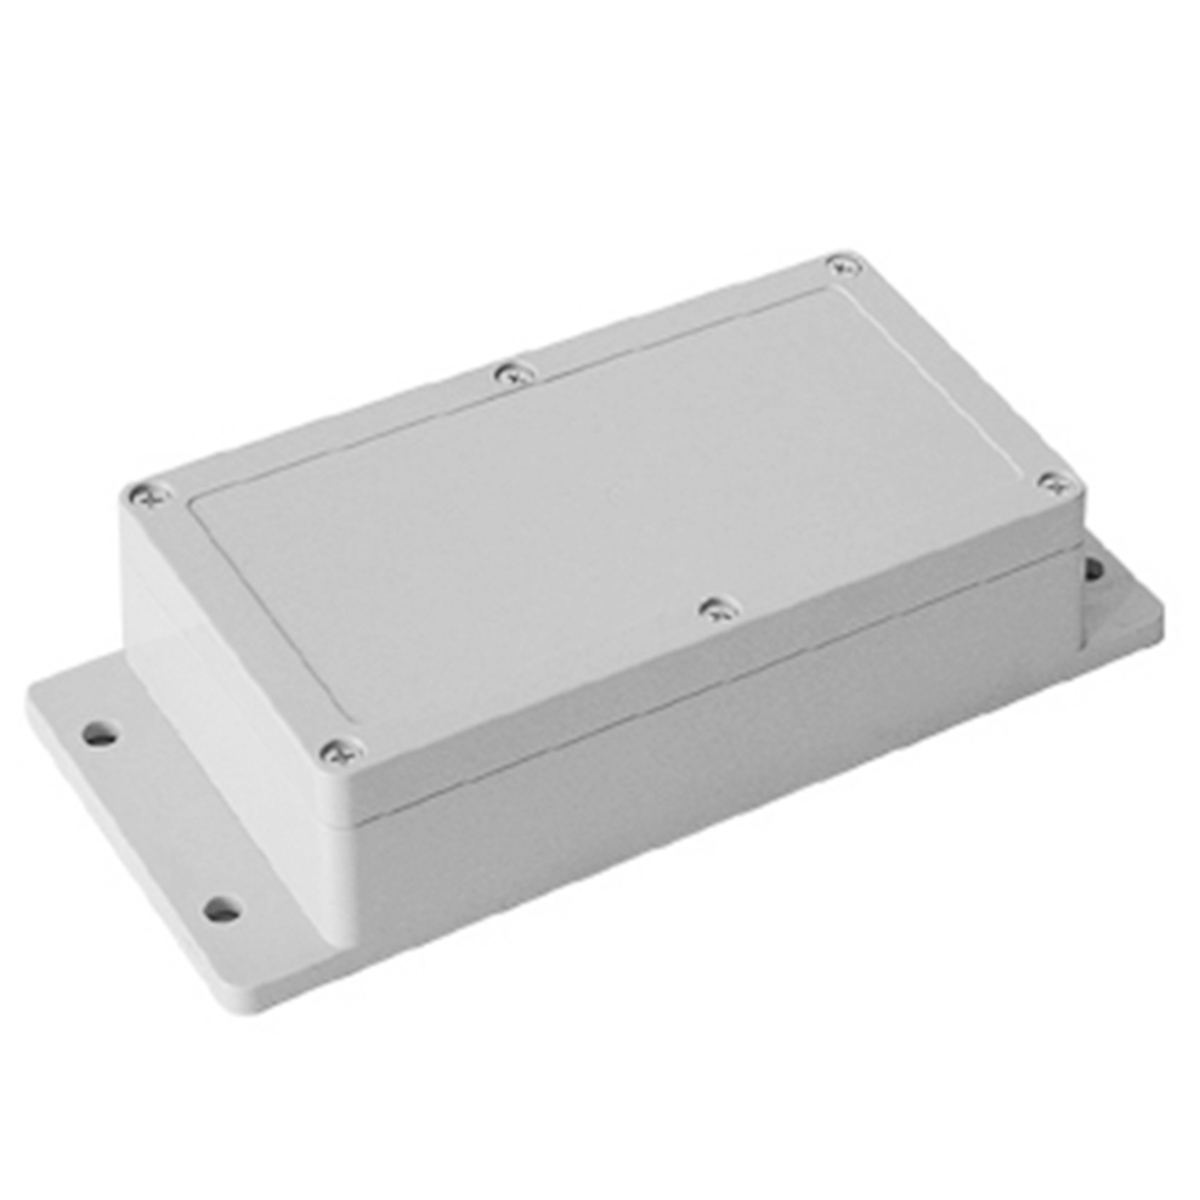 1pc White Plastic Electrical Project Power Junction Box Waterproof  Enclosure Case 158mmx90mmx46mm 1 piece free shipping plastic enclosure for wall mount amplifier case waterproof plastic junction box 110 65 28mm